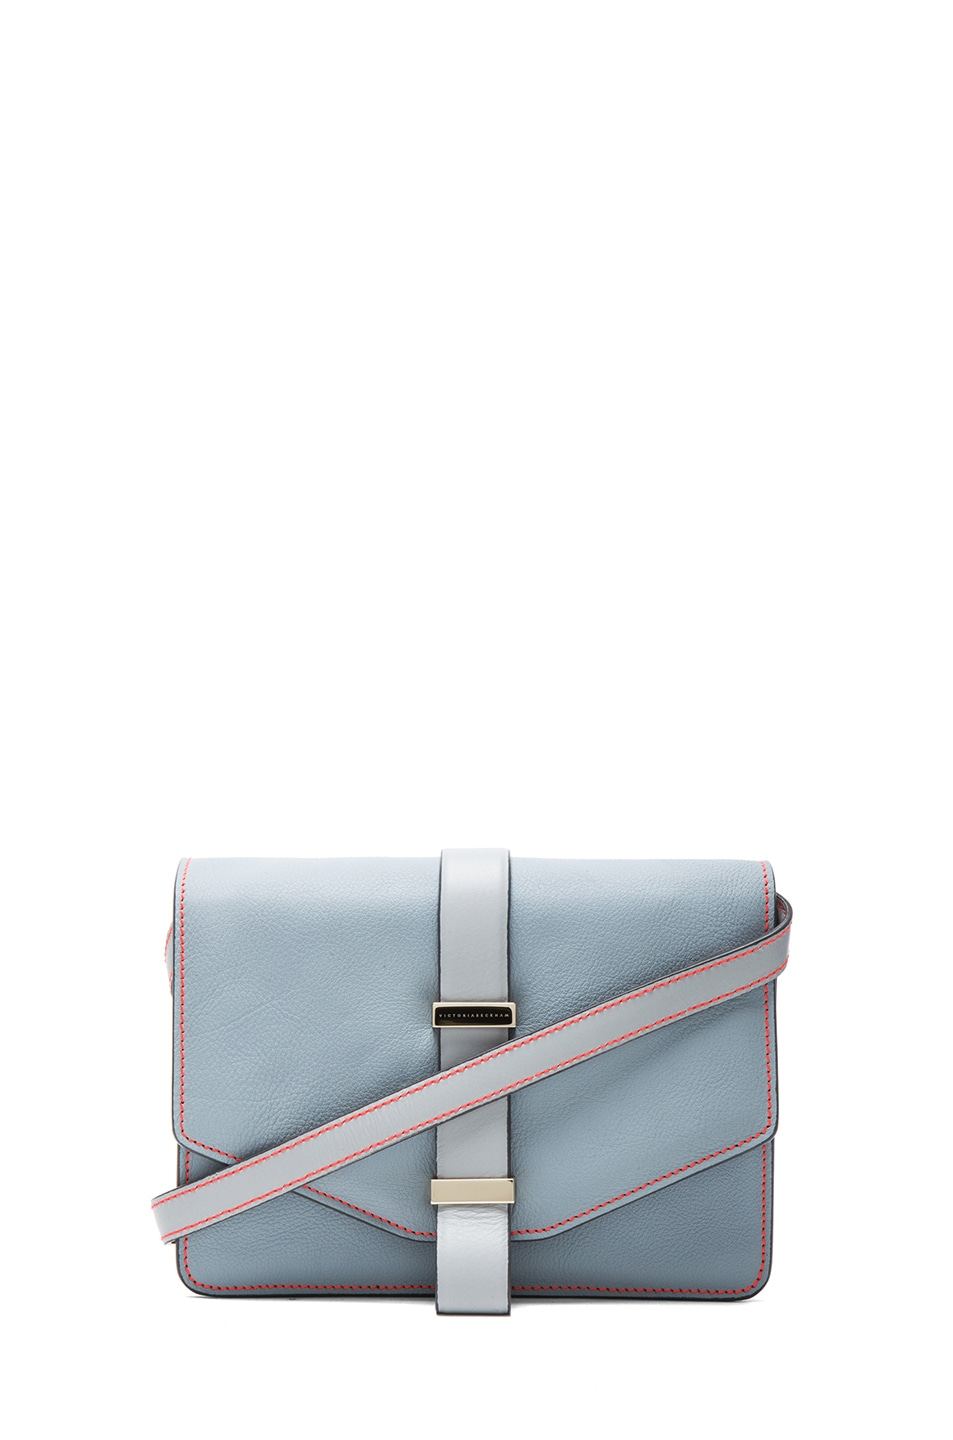 Image 1 of Victoria Beckham Mini Satchel in Rainy Day